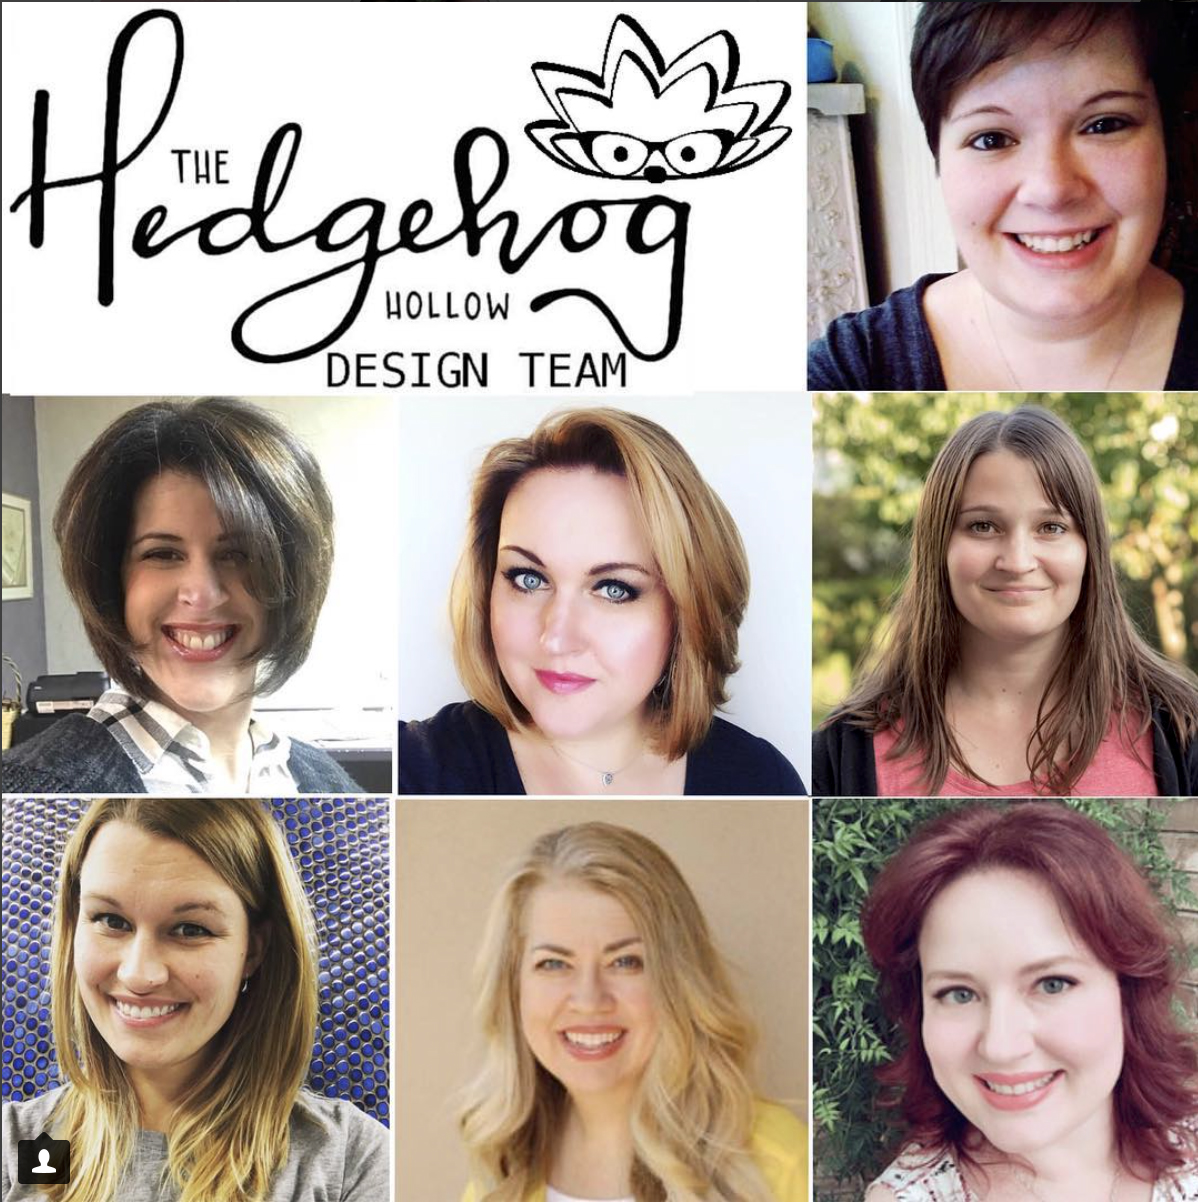 New Hedgehog Hollow Design Team